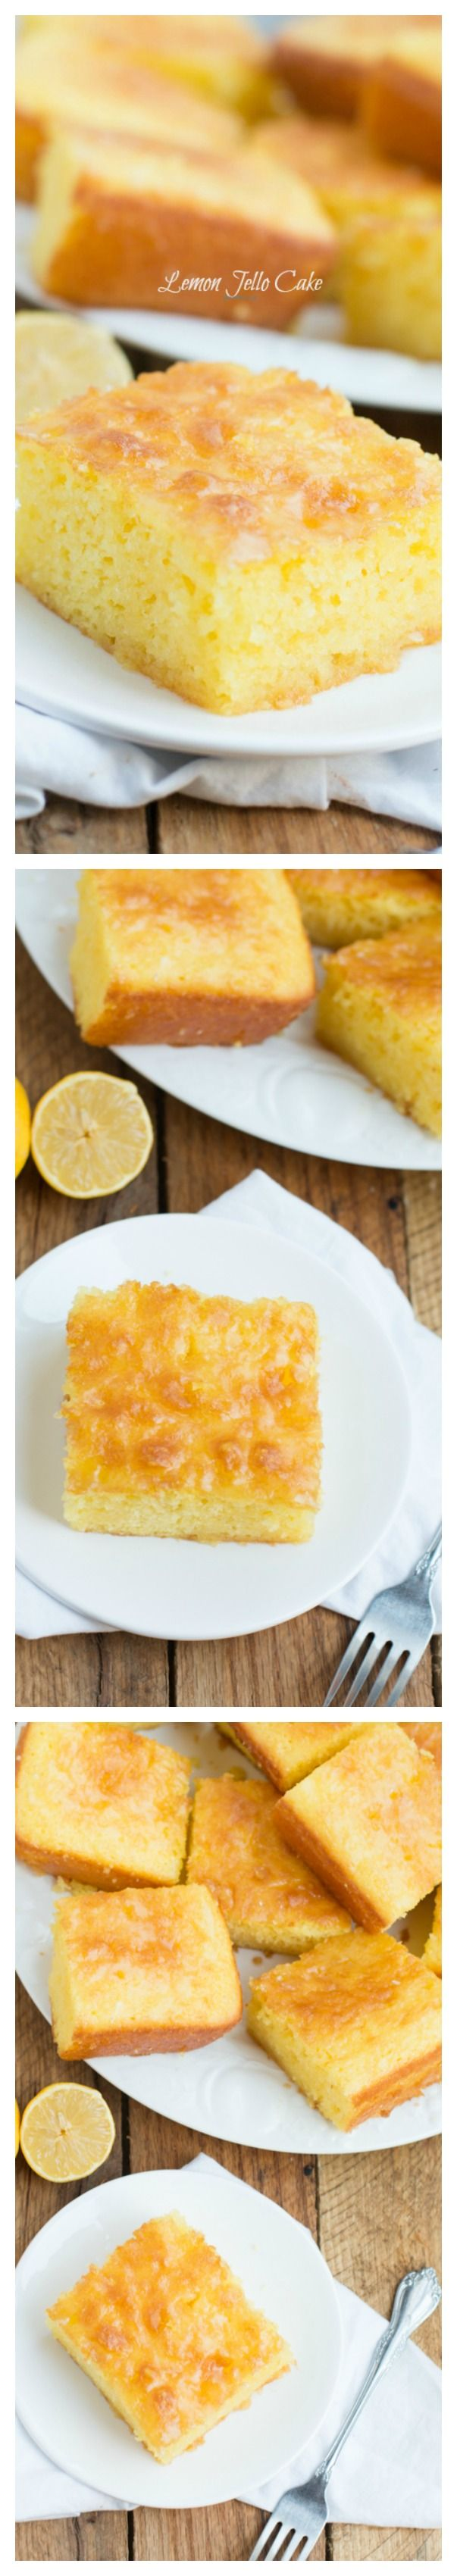 This Lemon Jello cake is one that I have made for many years.  It's one of my favorite cakes.  I take a fork and poke holes into the warm cake after it comes out of the oven and then put the glaze on top of it.  This allows it to go down into the cake.